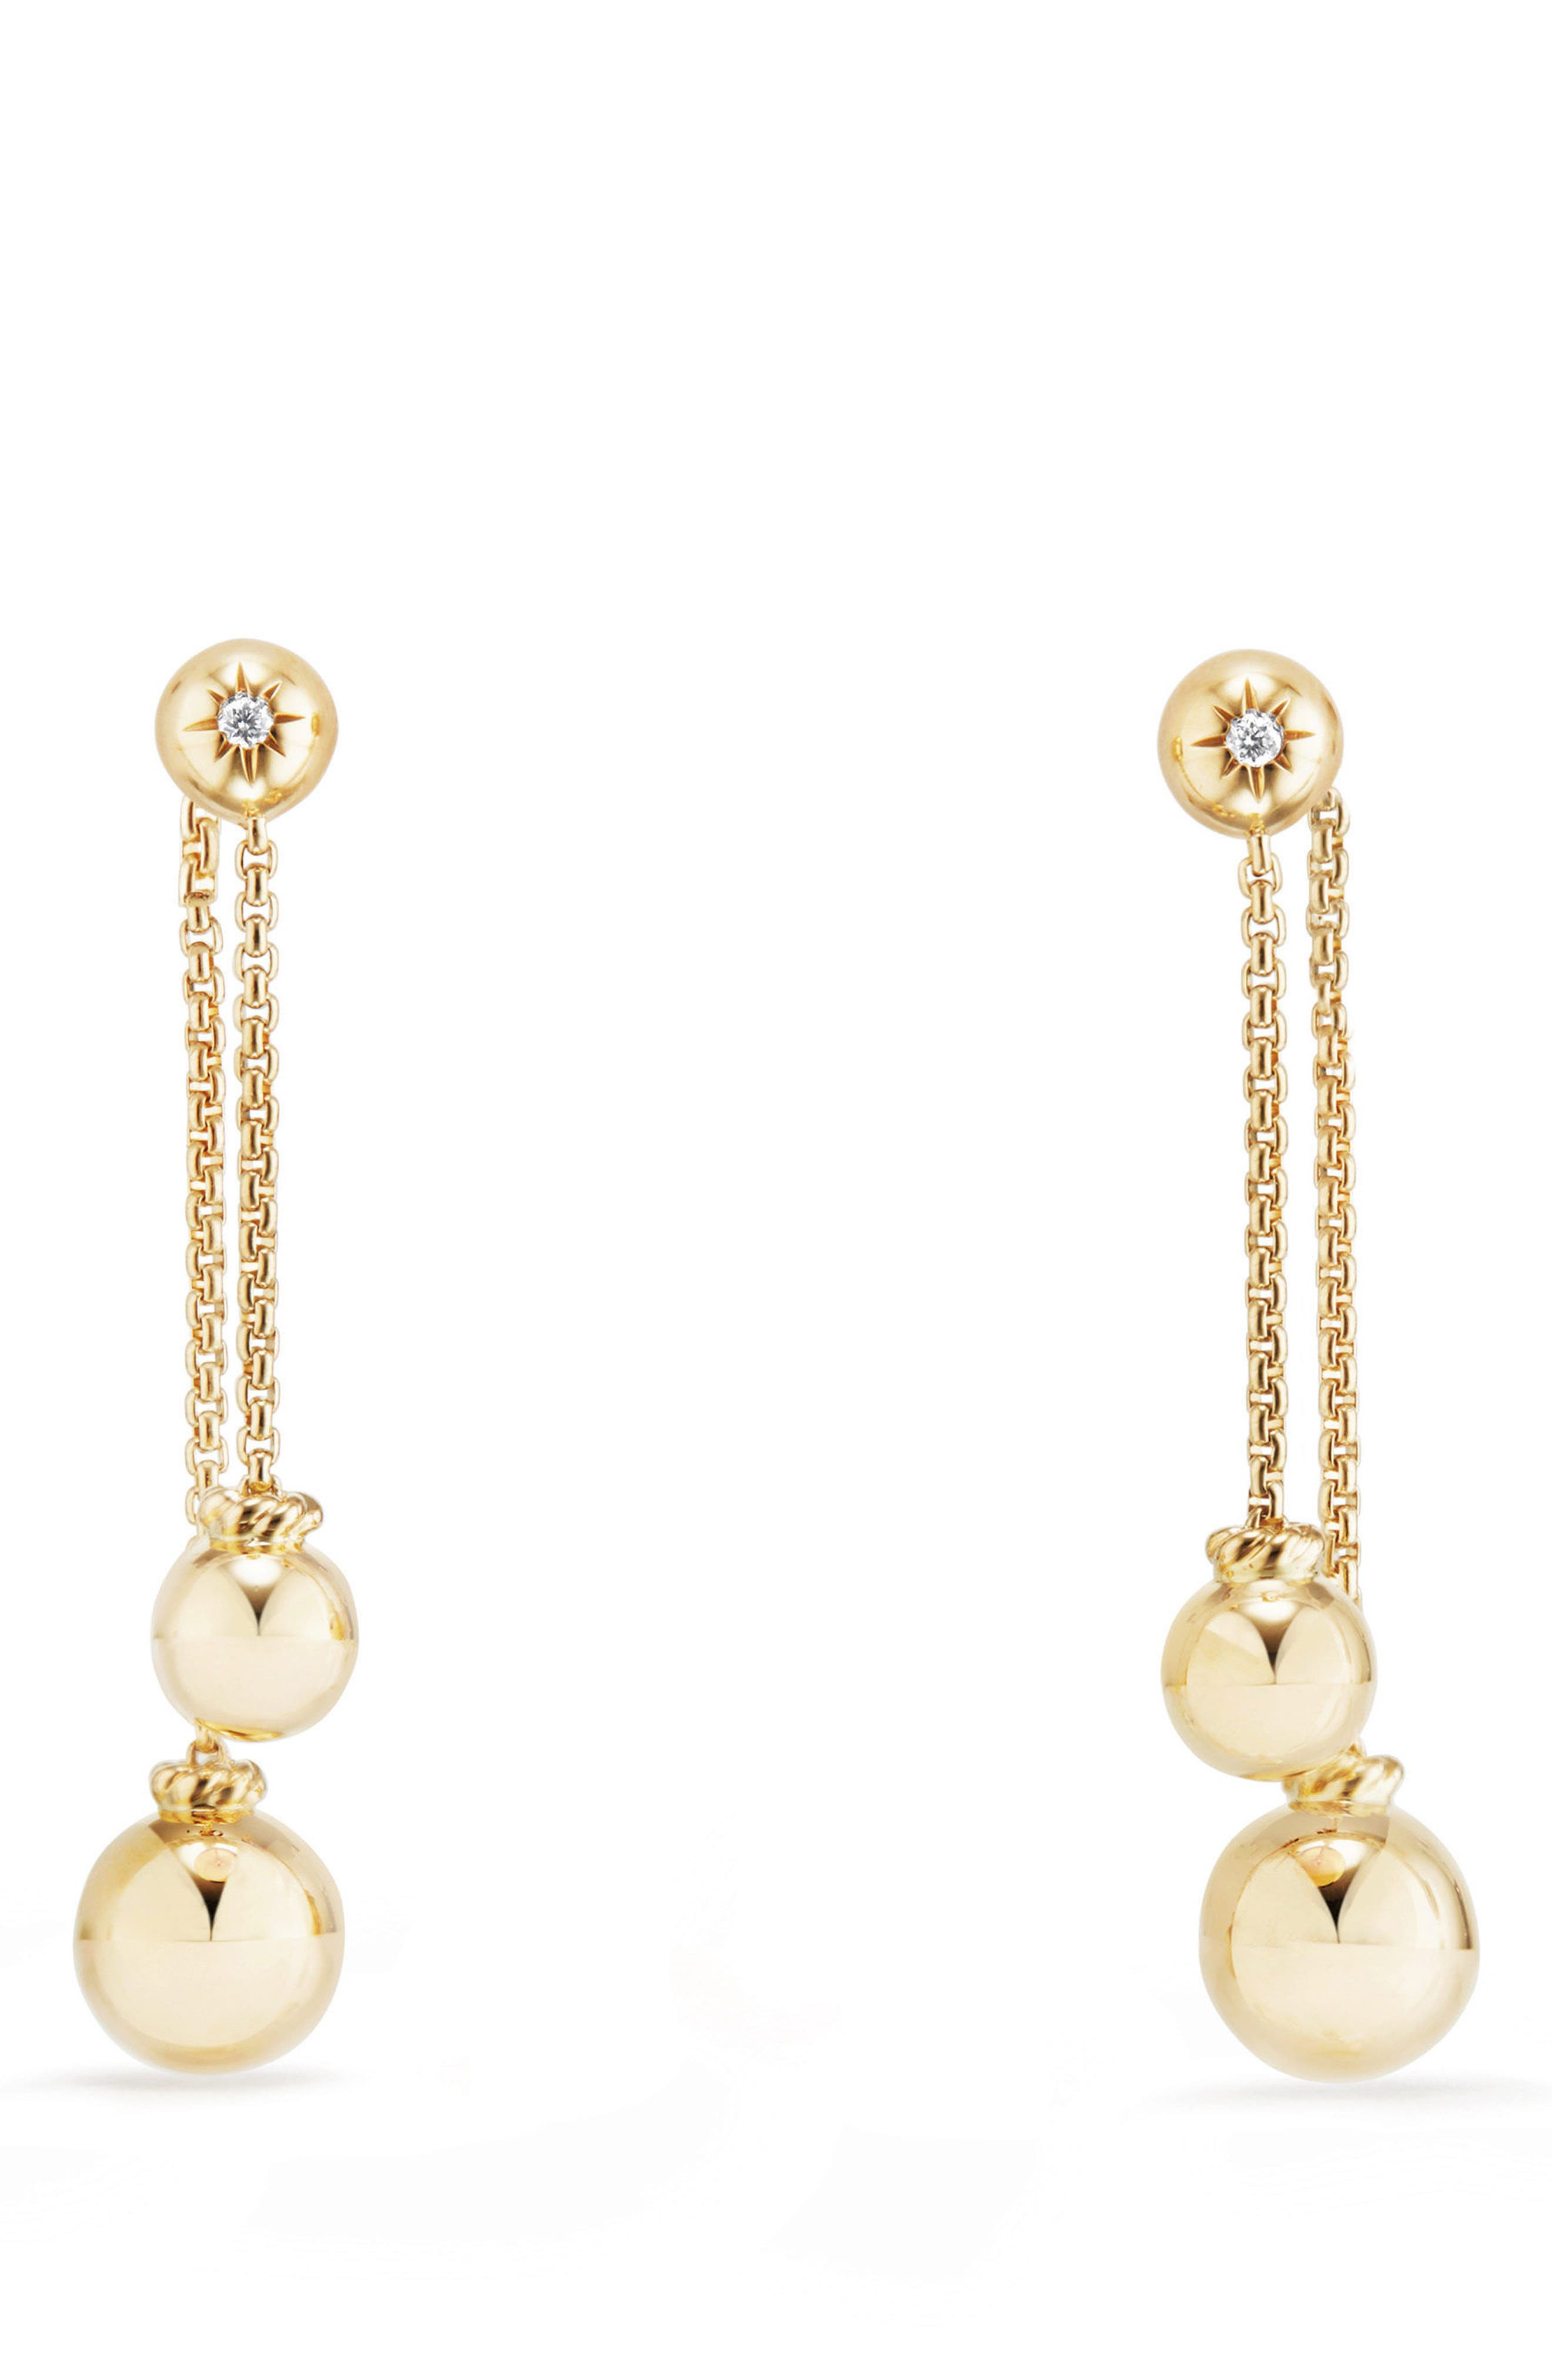 Solari Chain Drop Earrings with Diamonds in 18K Gold,                         Main,                         color, Yellow Gold